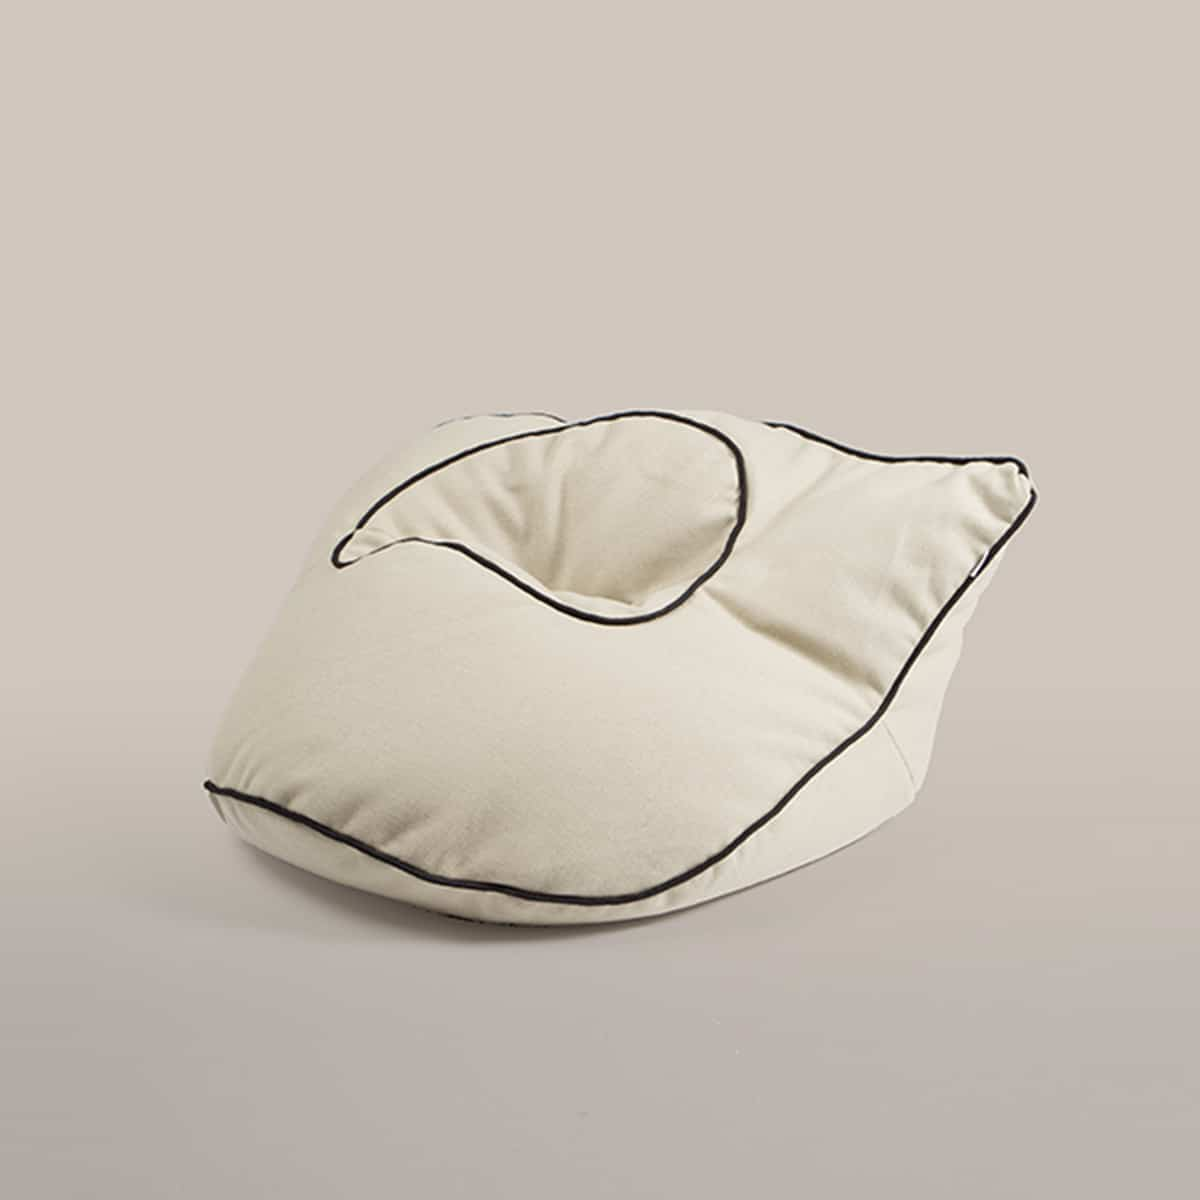 pouf barnabe the brave saintesprit beige zeeloft 2